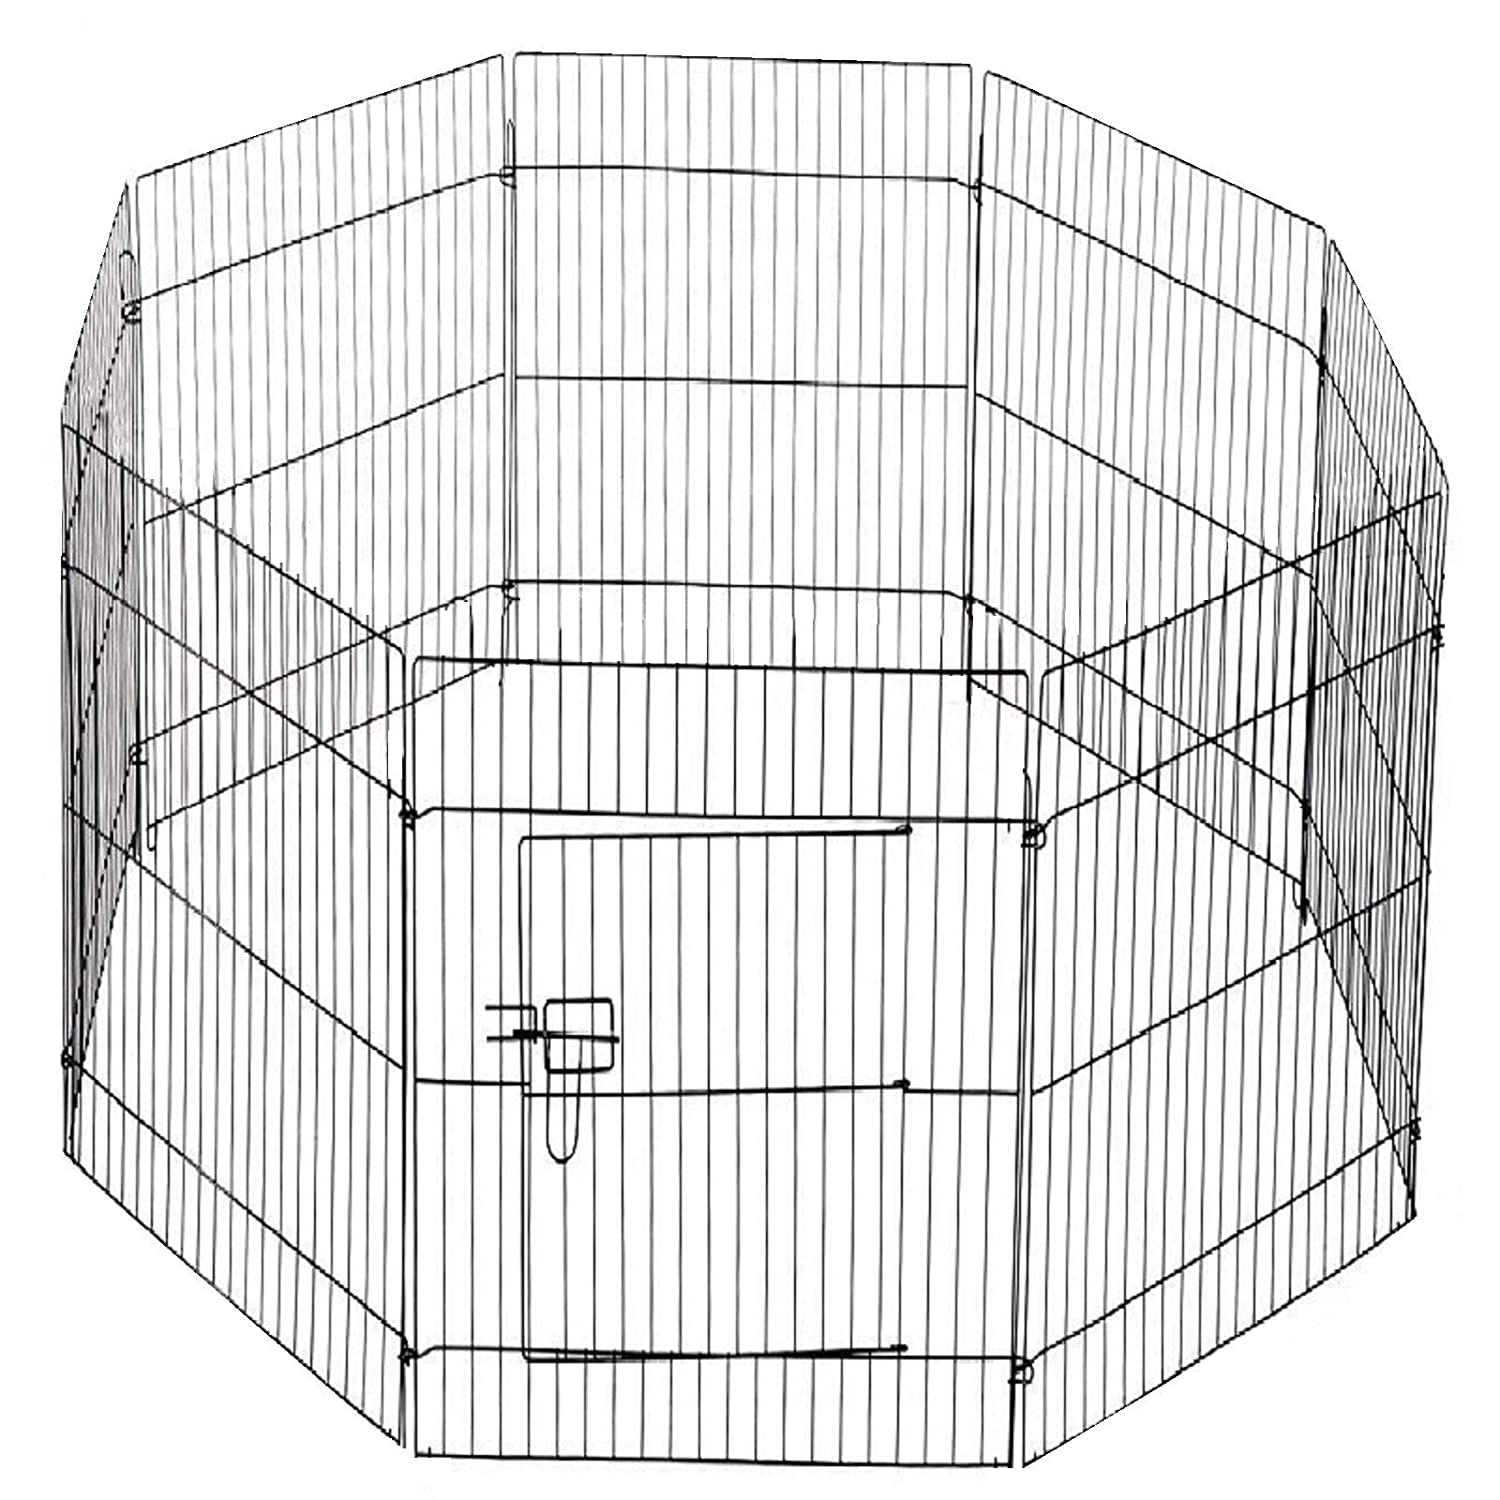 BEAGLE YELLOO Modular Fence for Dogs Rodents Metal Rabbits 8 Panels Various Models